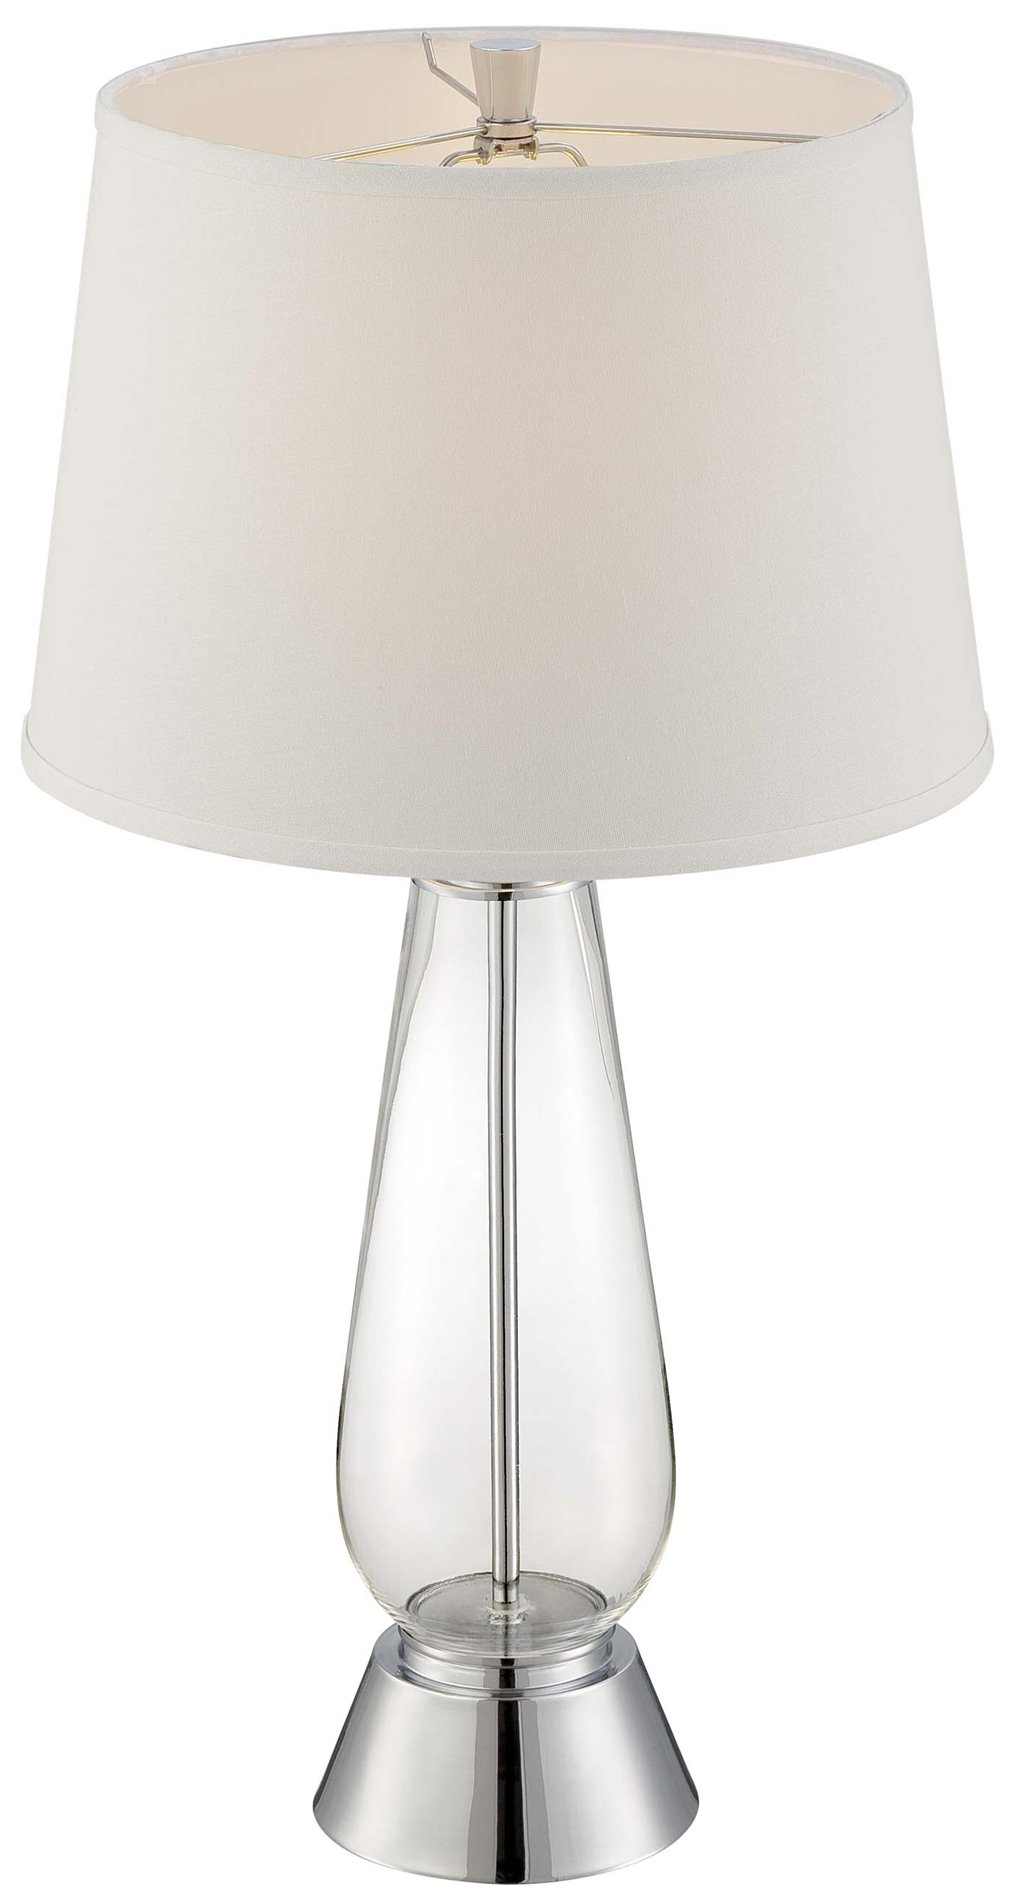 Lite source ls 22546 danya 150w incand transitional table for 150 w table lamp